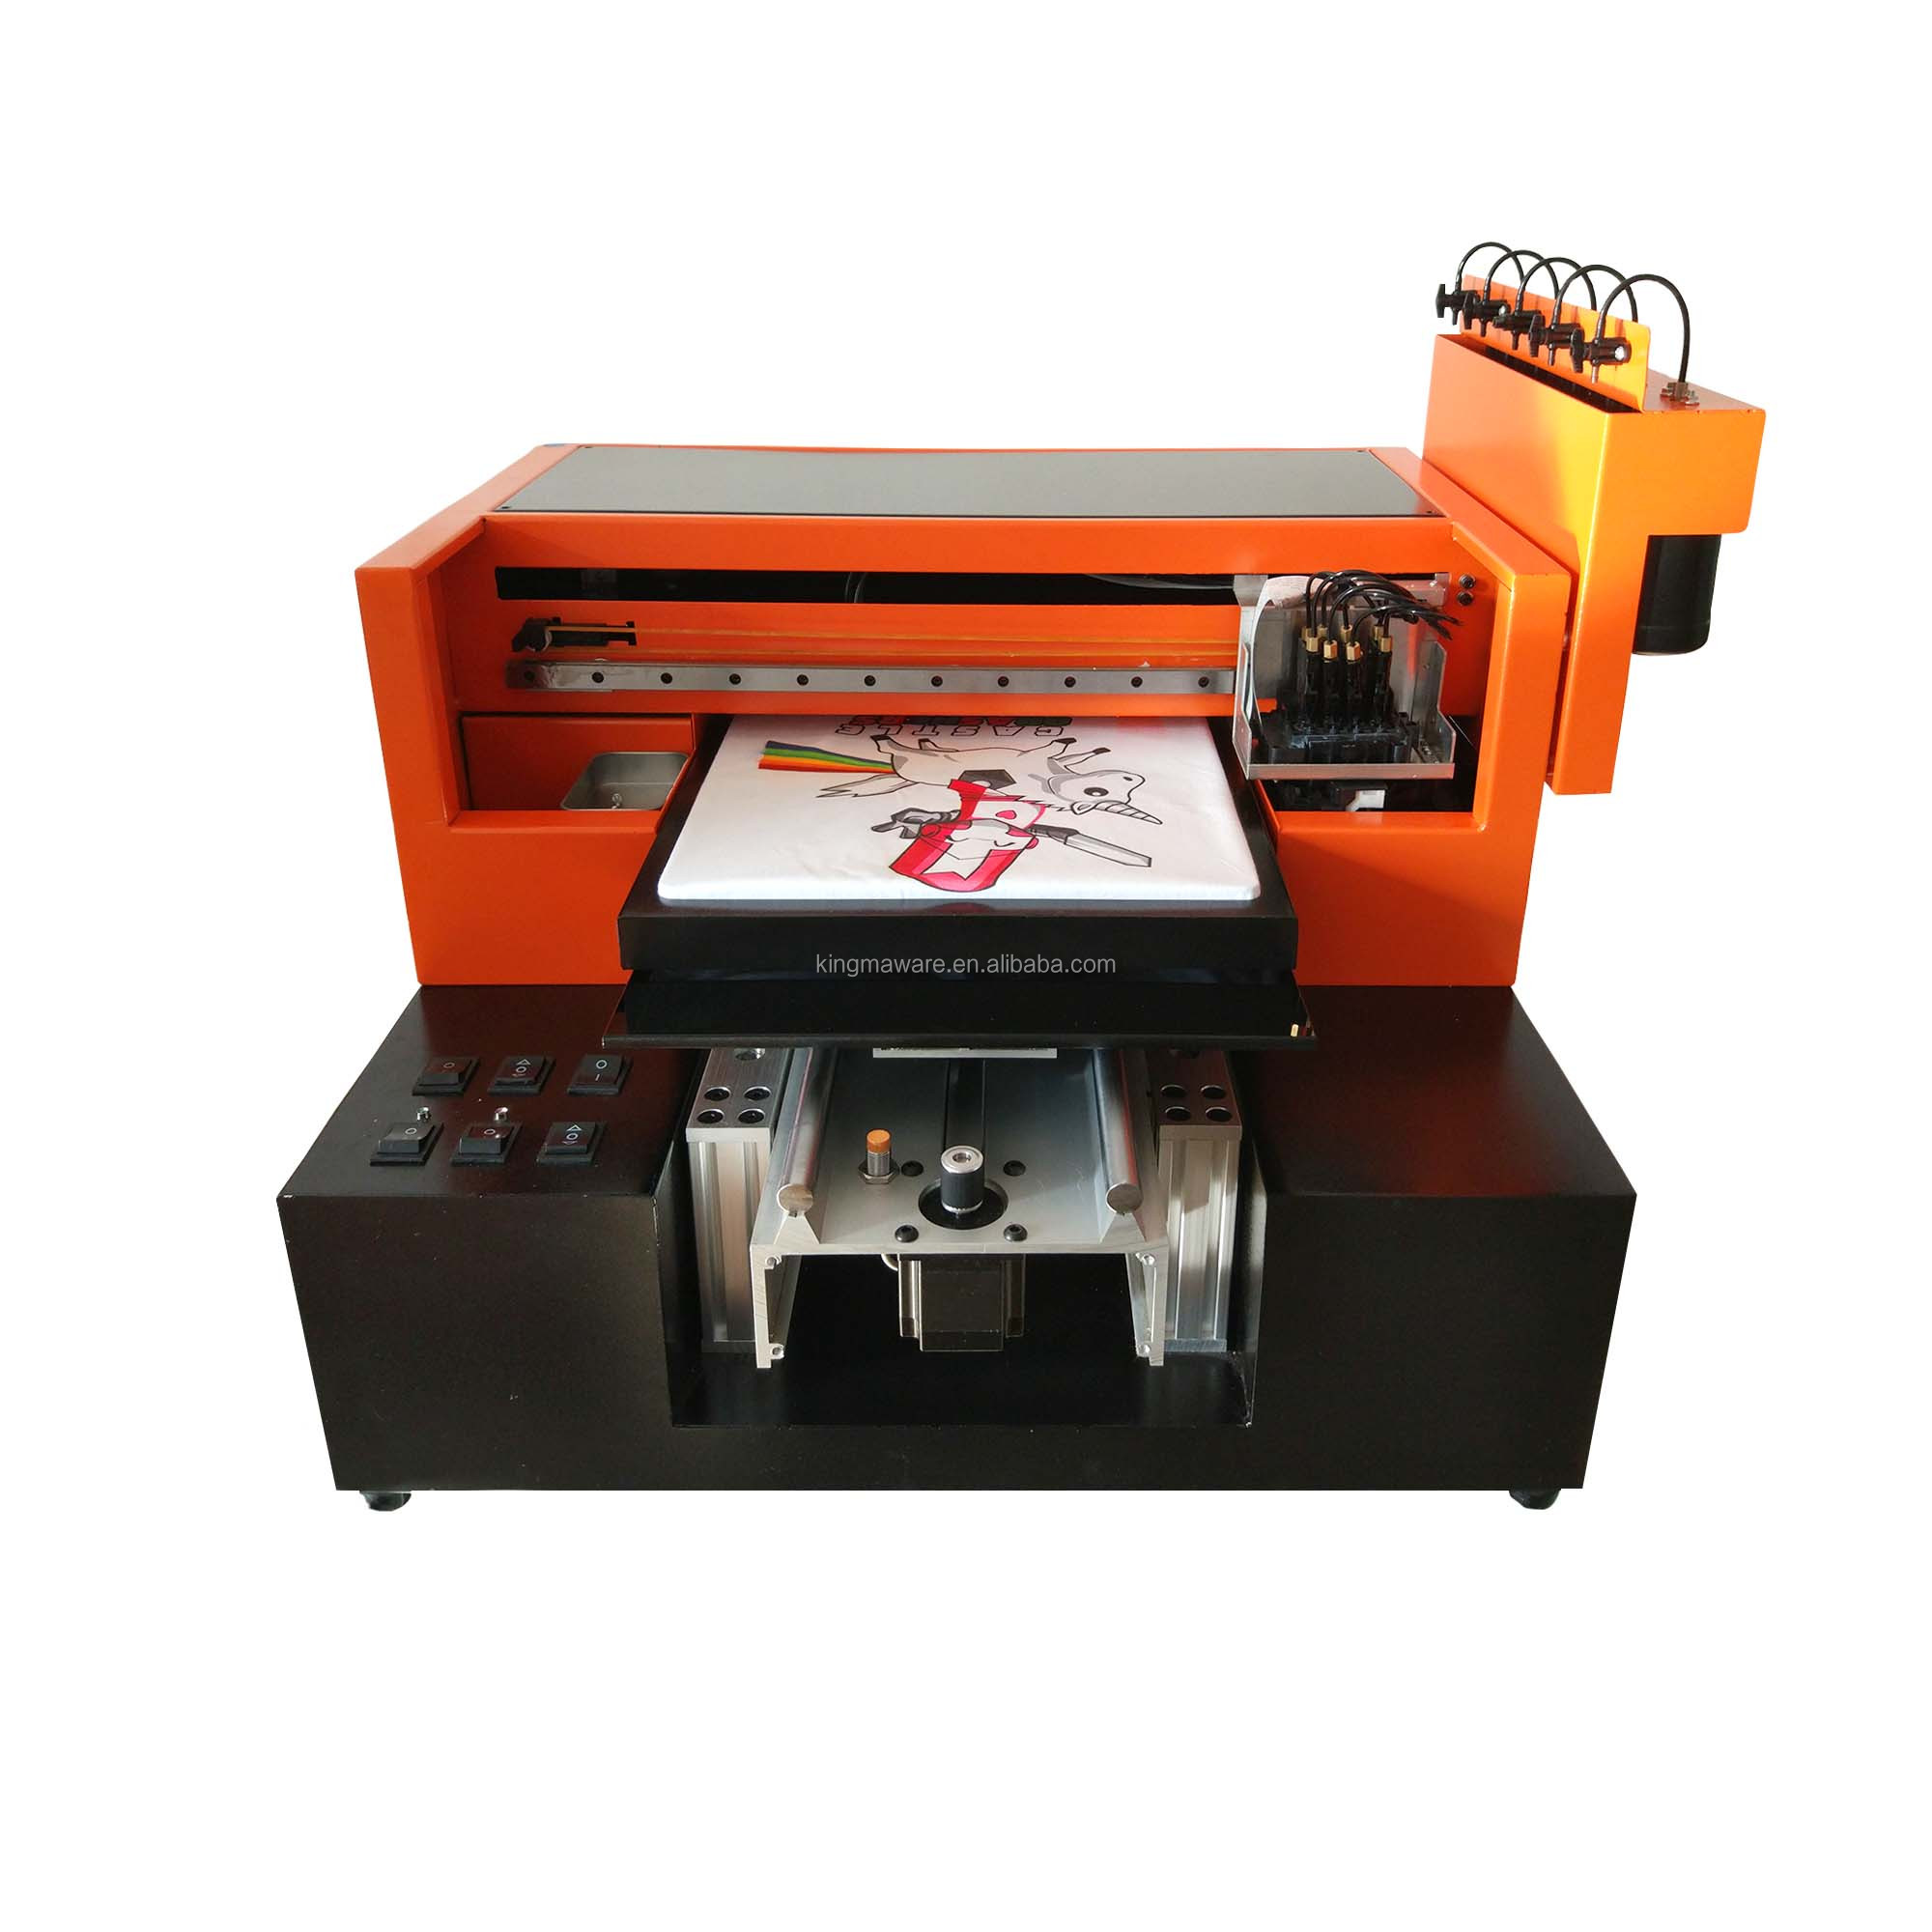 66928e3a0 2018 KMAJET Best price A3 dtg automatic t-shirt printing machine prices in  kerala for sale